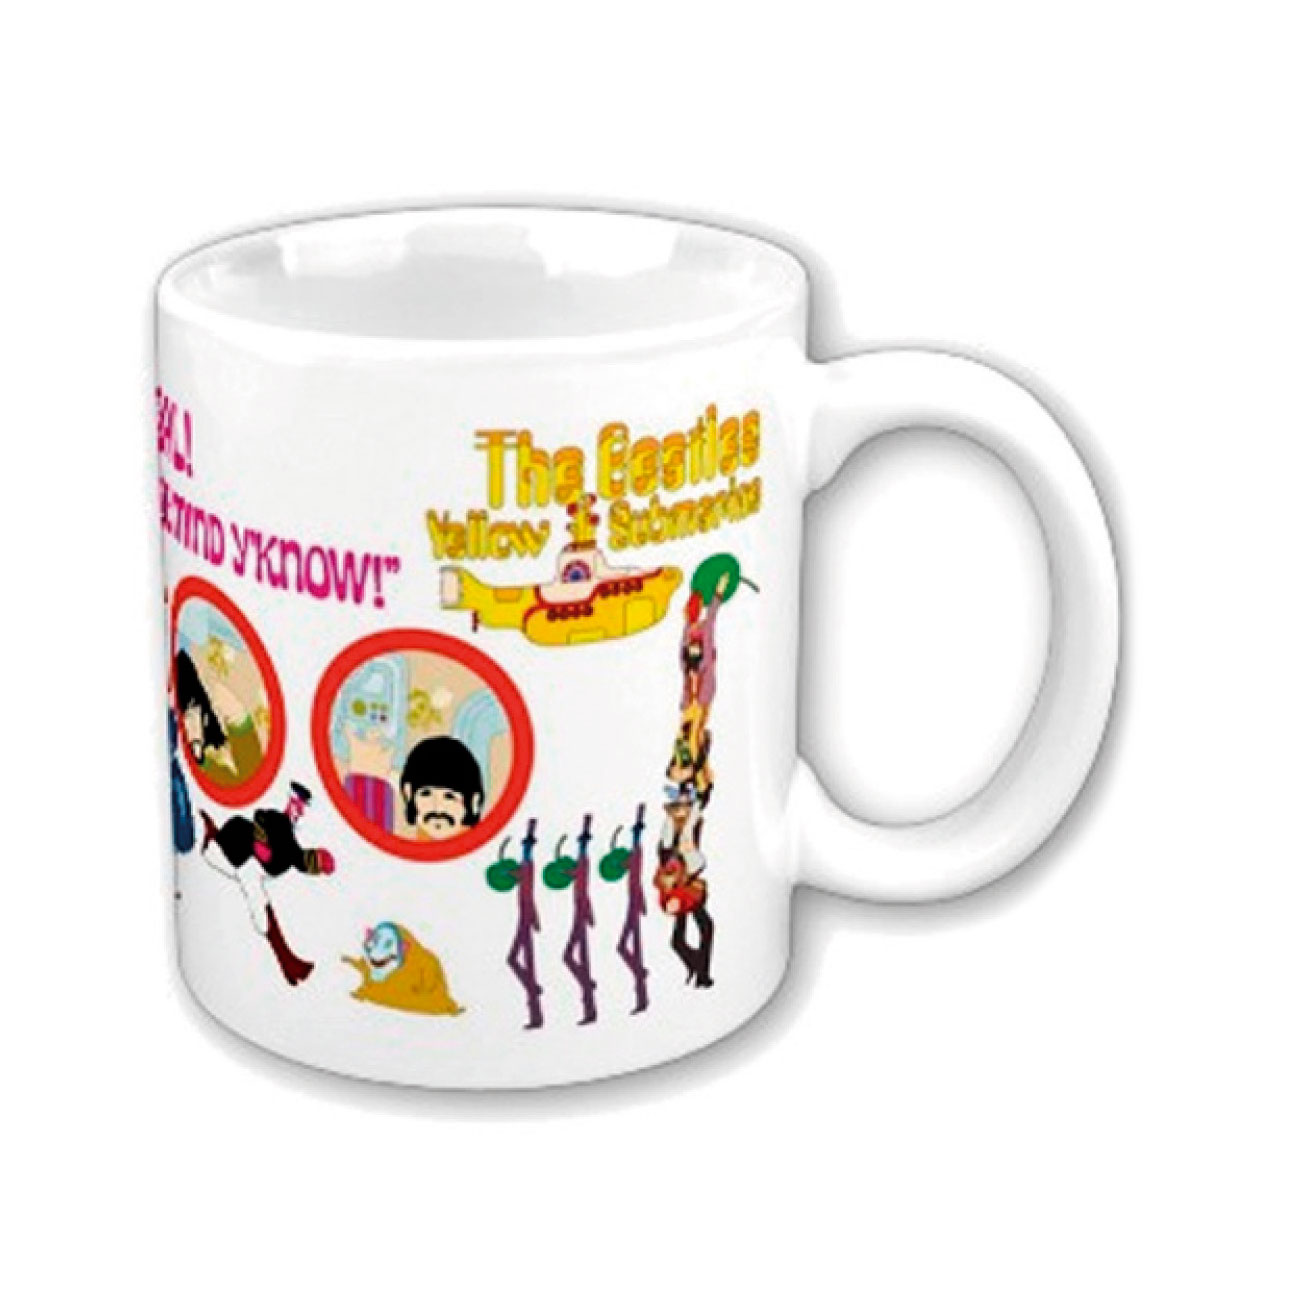 The Beatles Mug Yellow Sub Nothing Is Real. Emi Music officially licensed product.